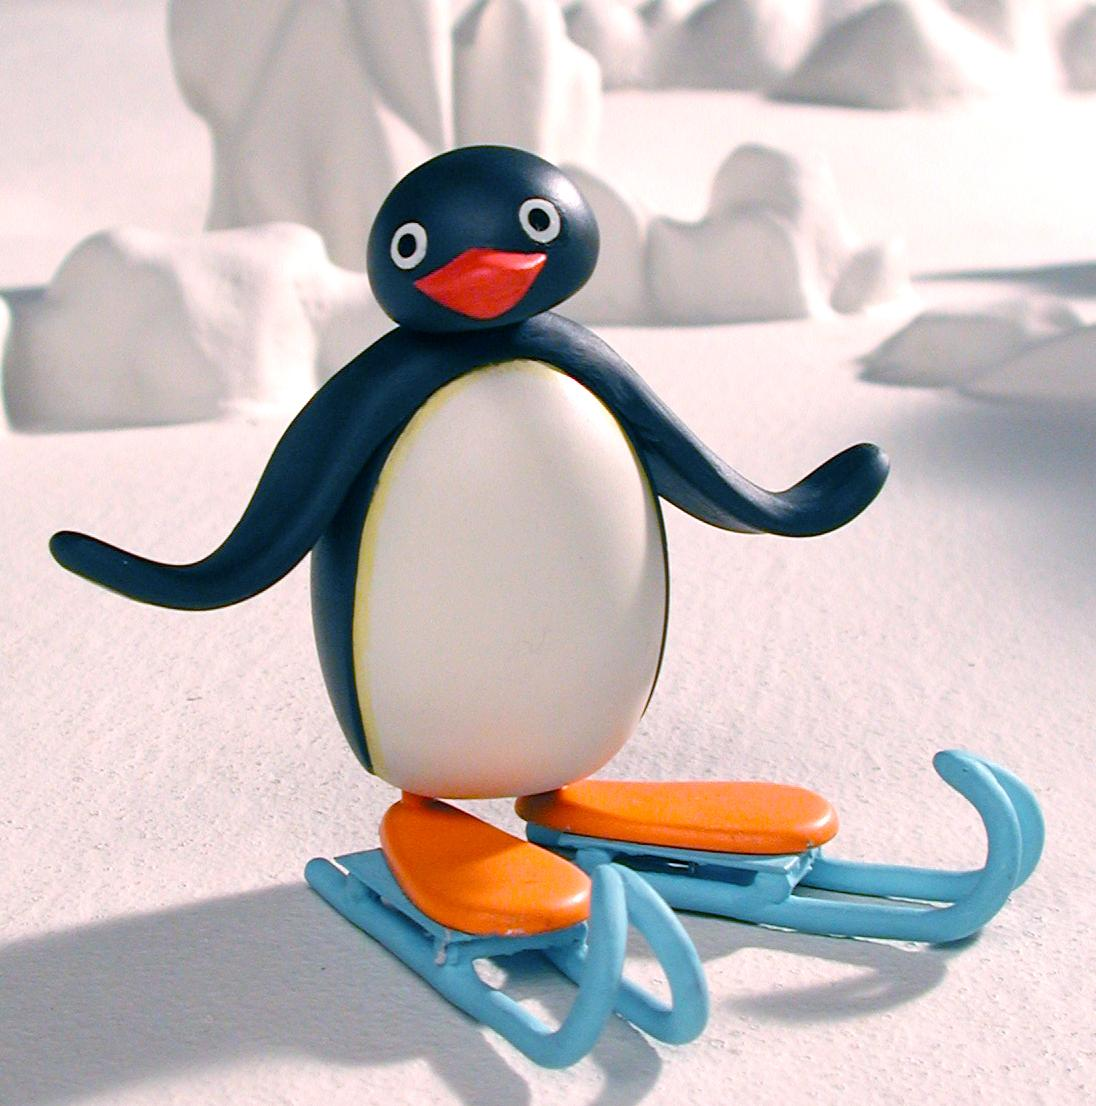 Still from the claymation children's series Pingu (Switzerland 1990-2000, United Kingdom 2003-2006)